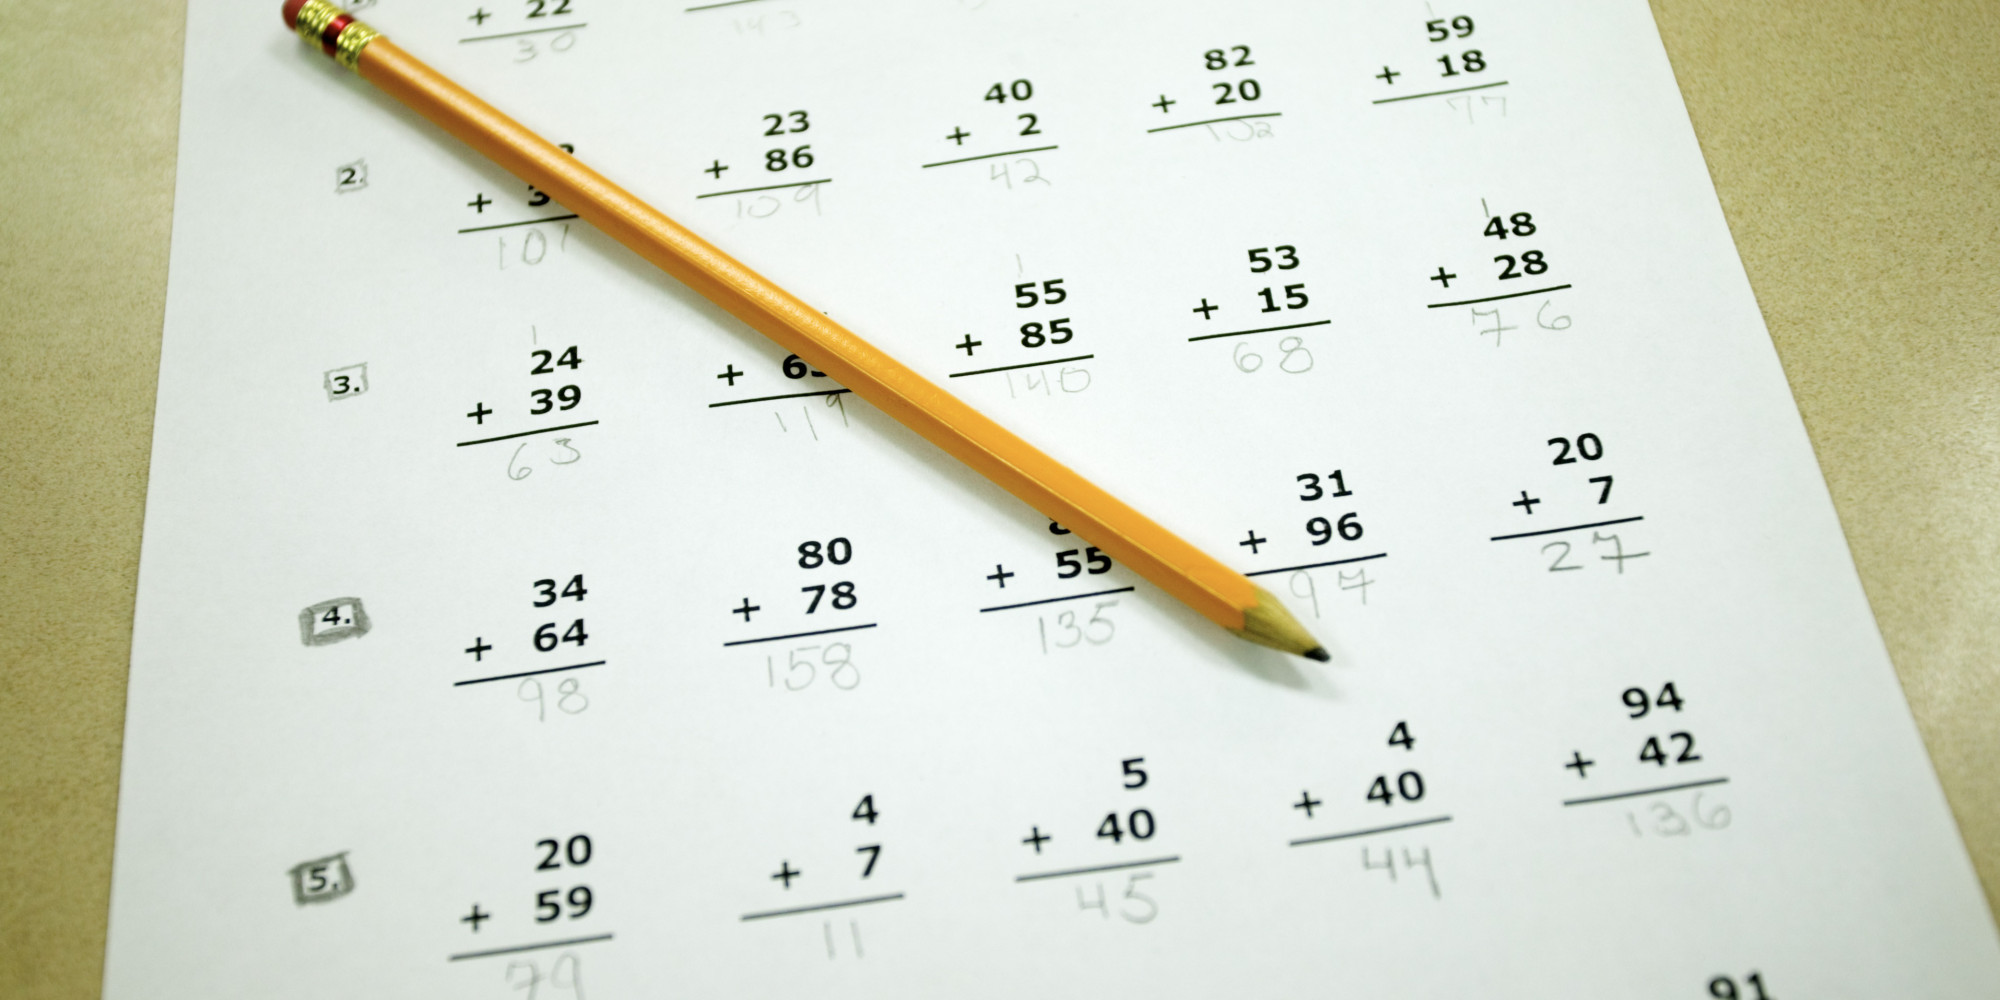 U S Test Scores Remain Stagnant While Other Countries See